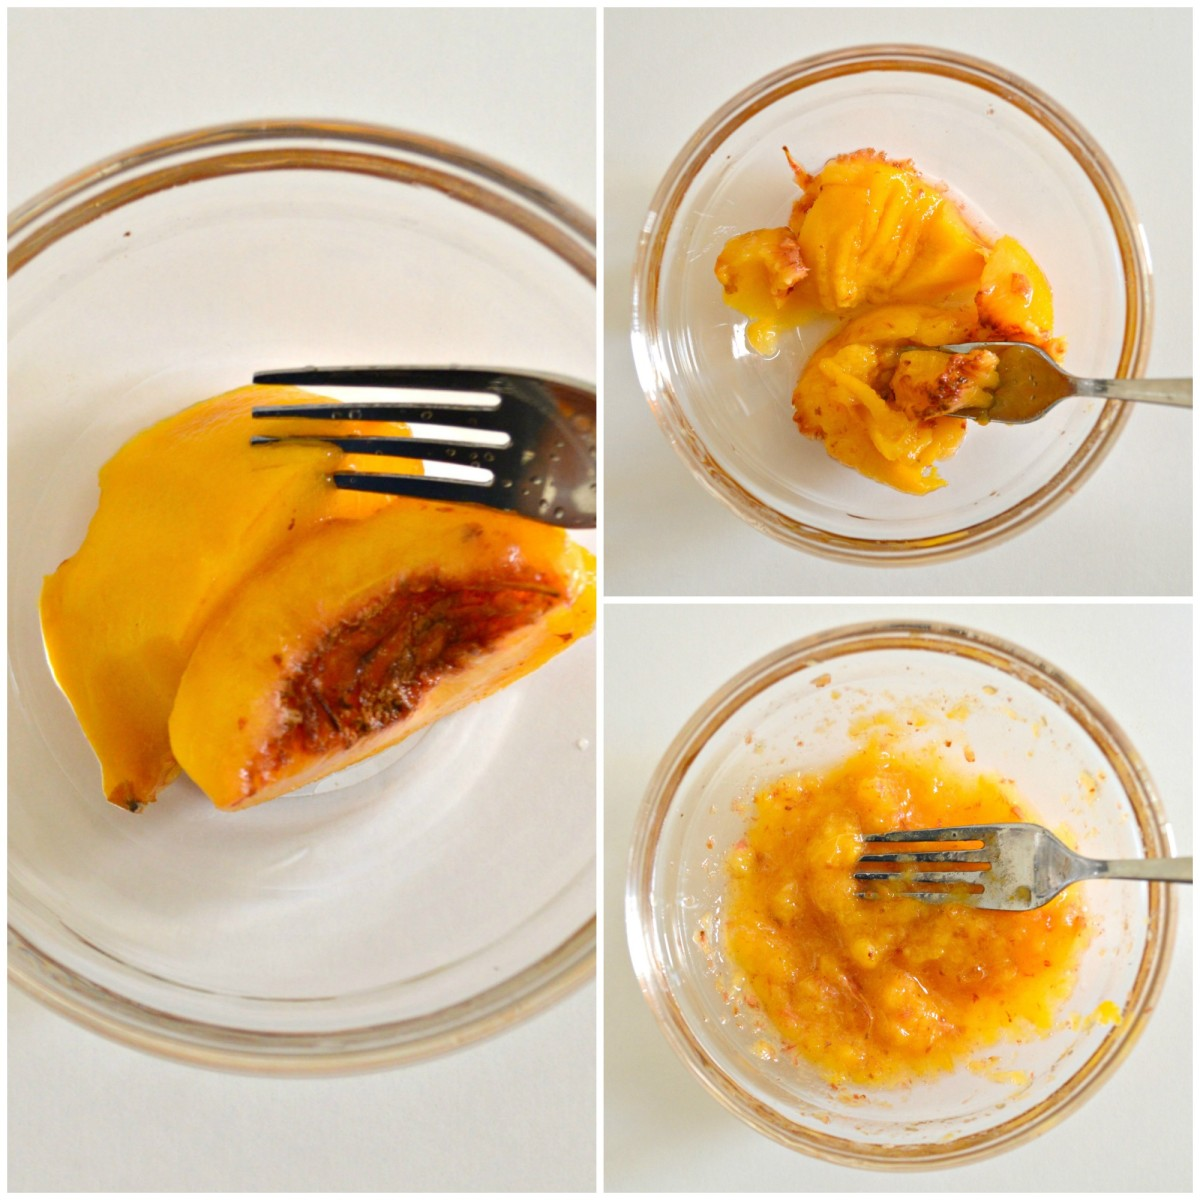 Mash up the peach with a fork.